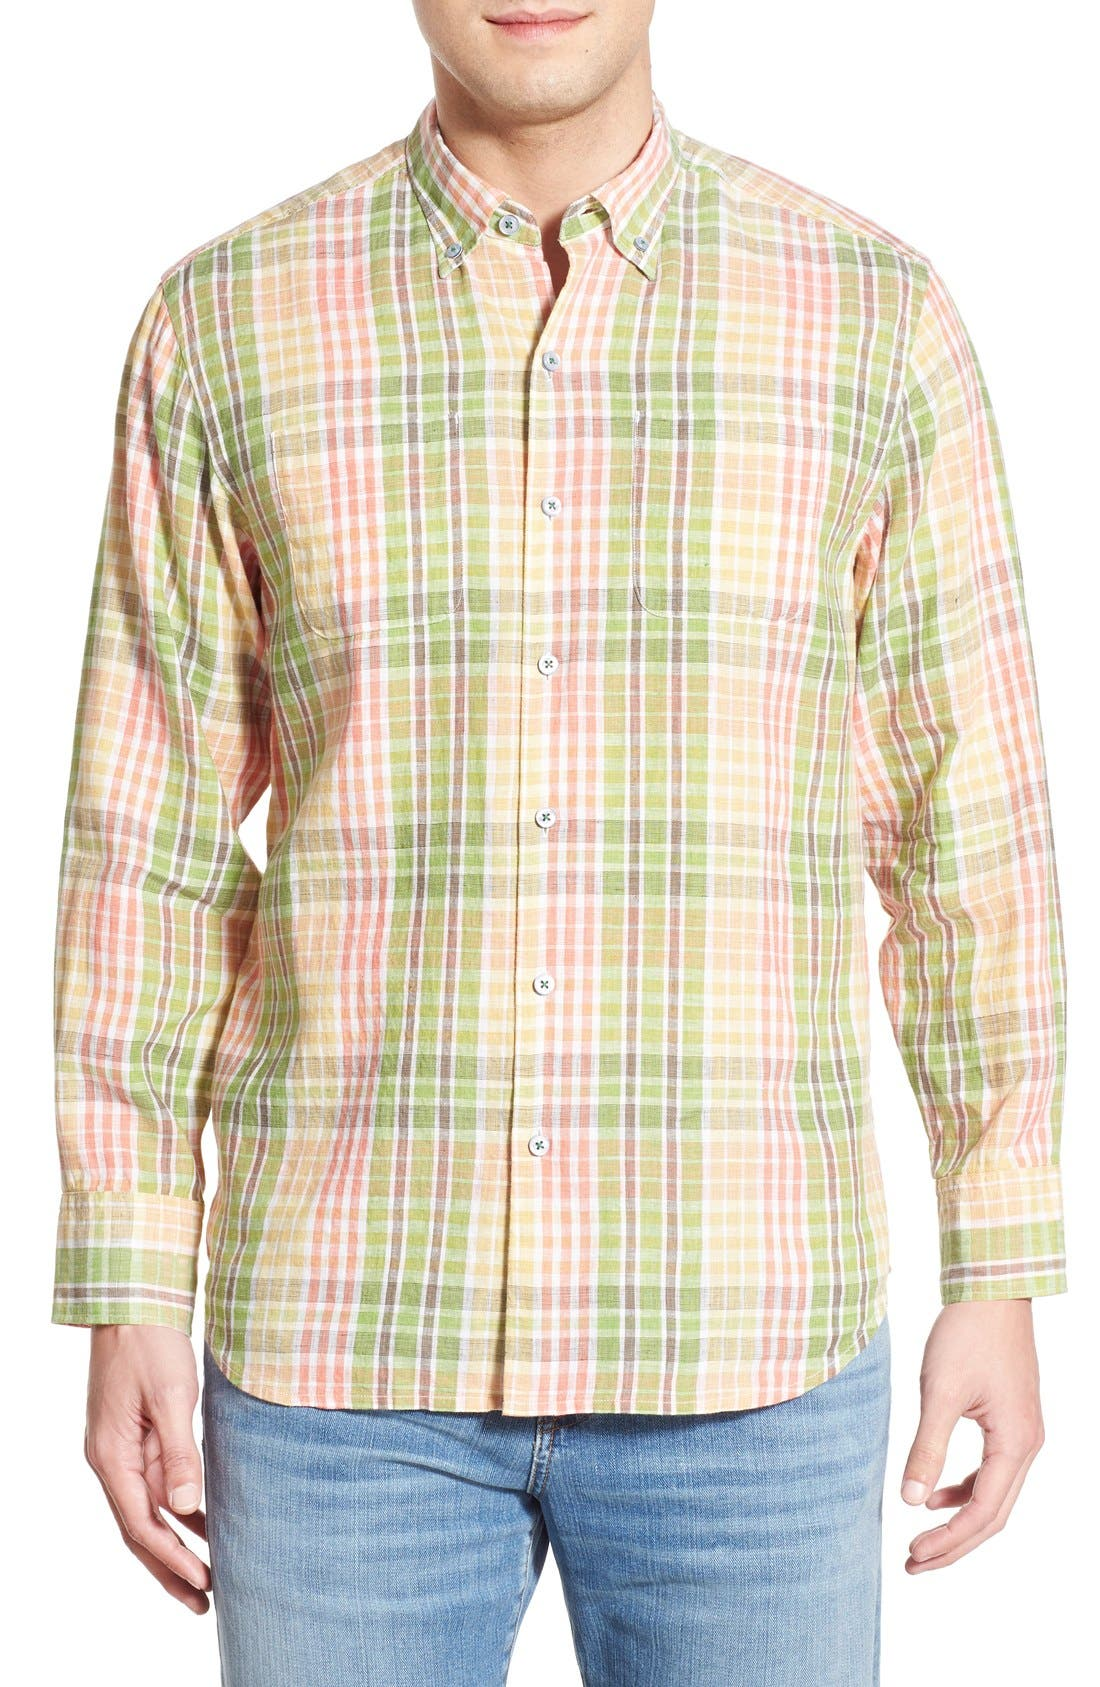 TOMMY BAHAMA 'Sun Direction' Regular Fit Plaid Sport